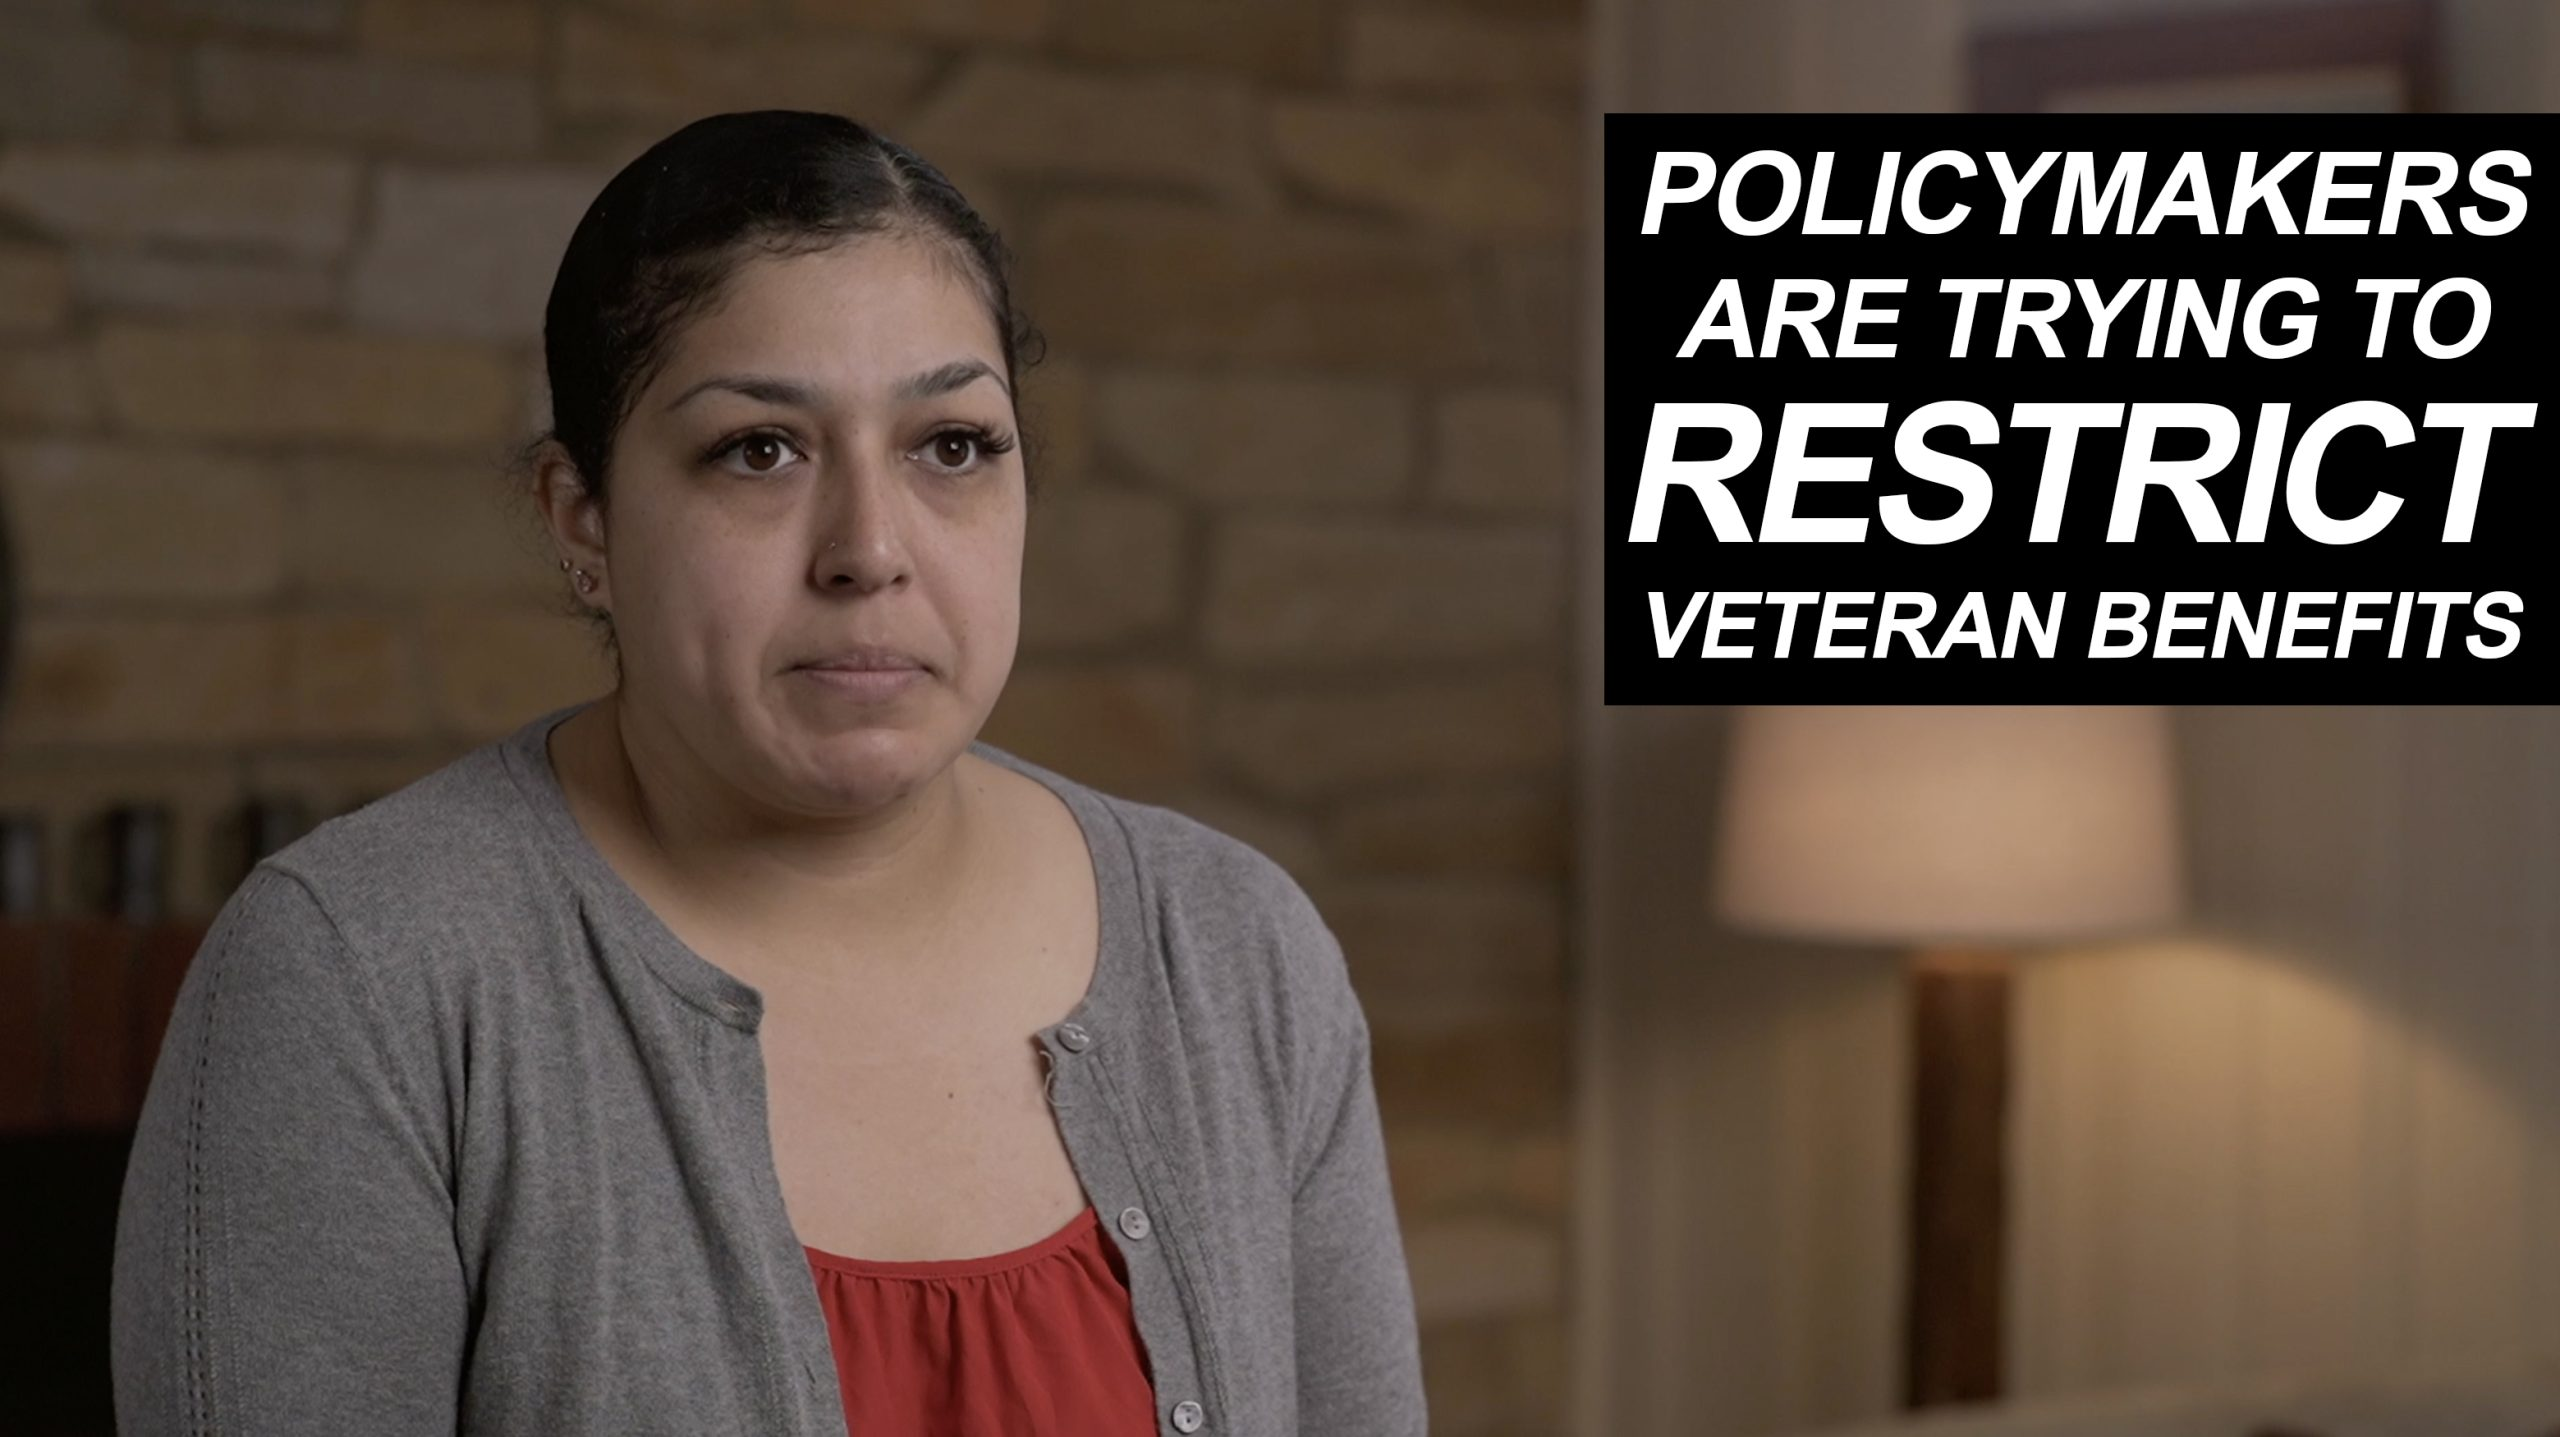 You are currently viewing Policymakers Are Trying to Restrict Veteran Benefits